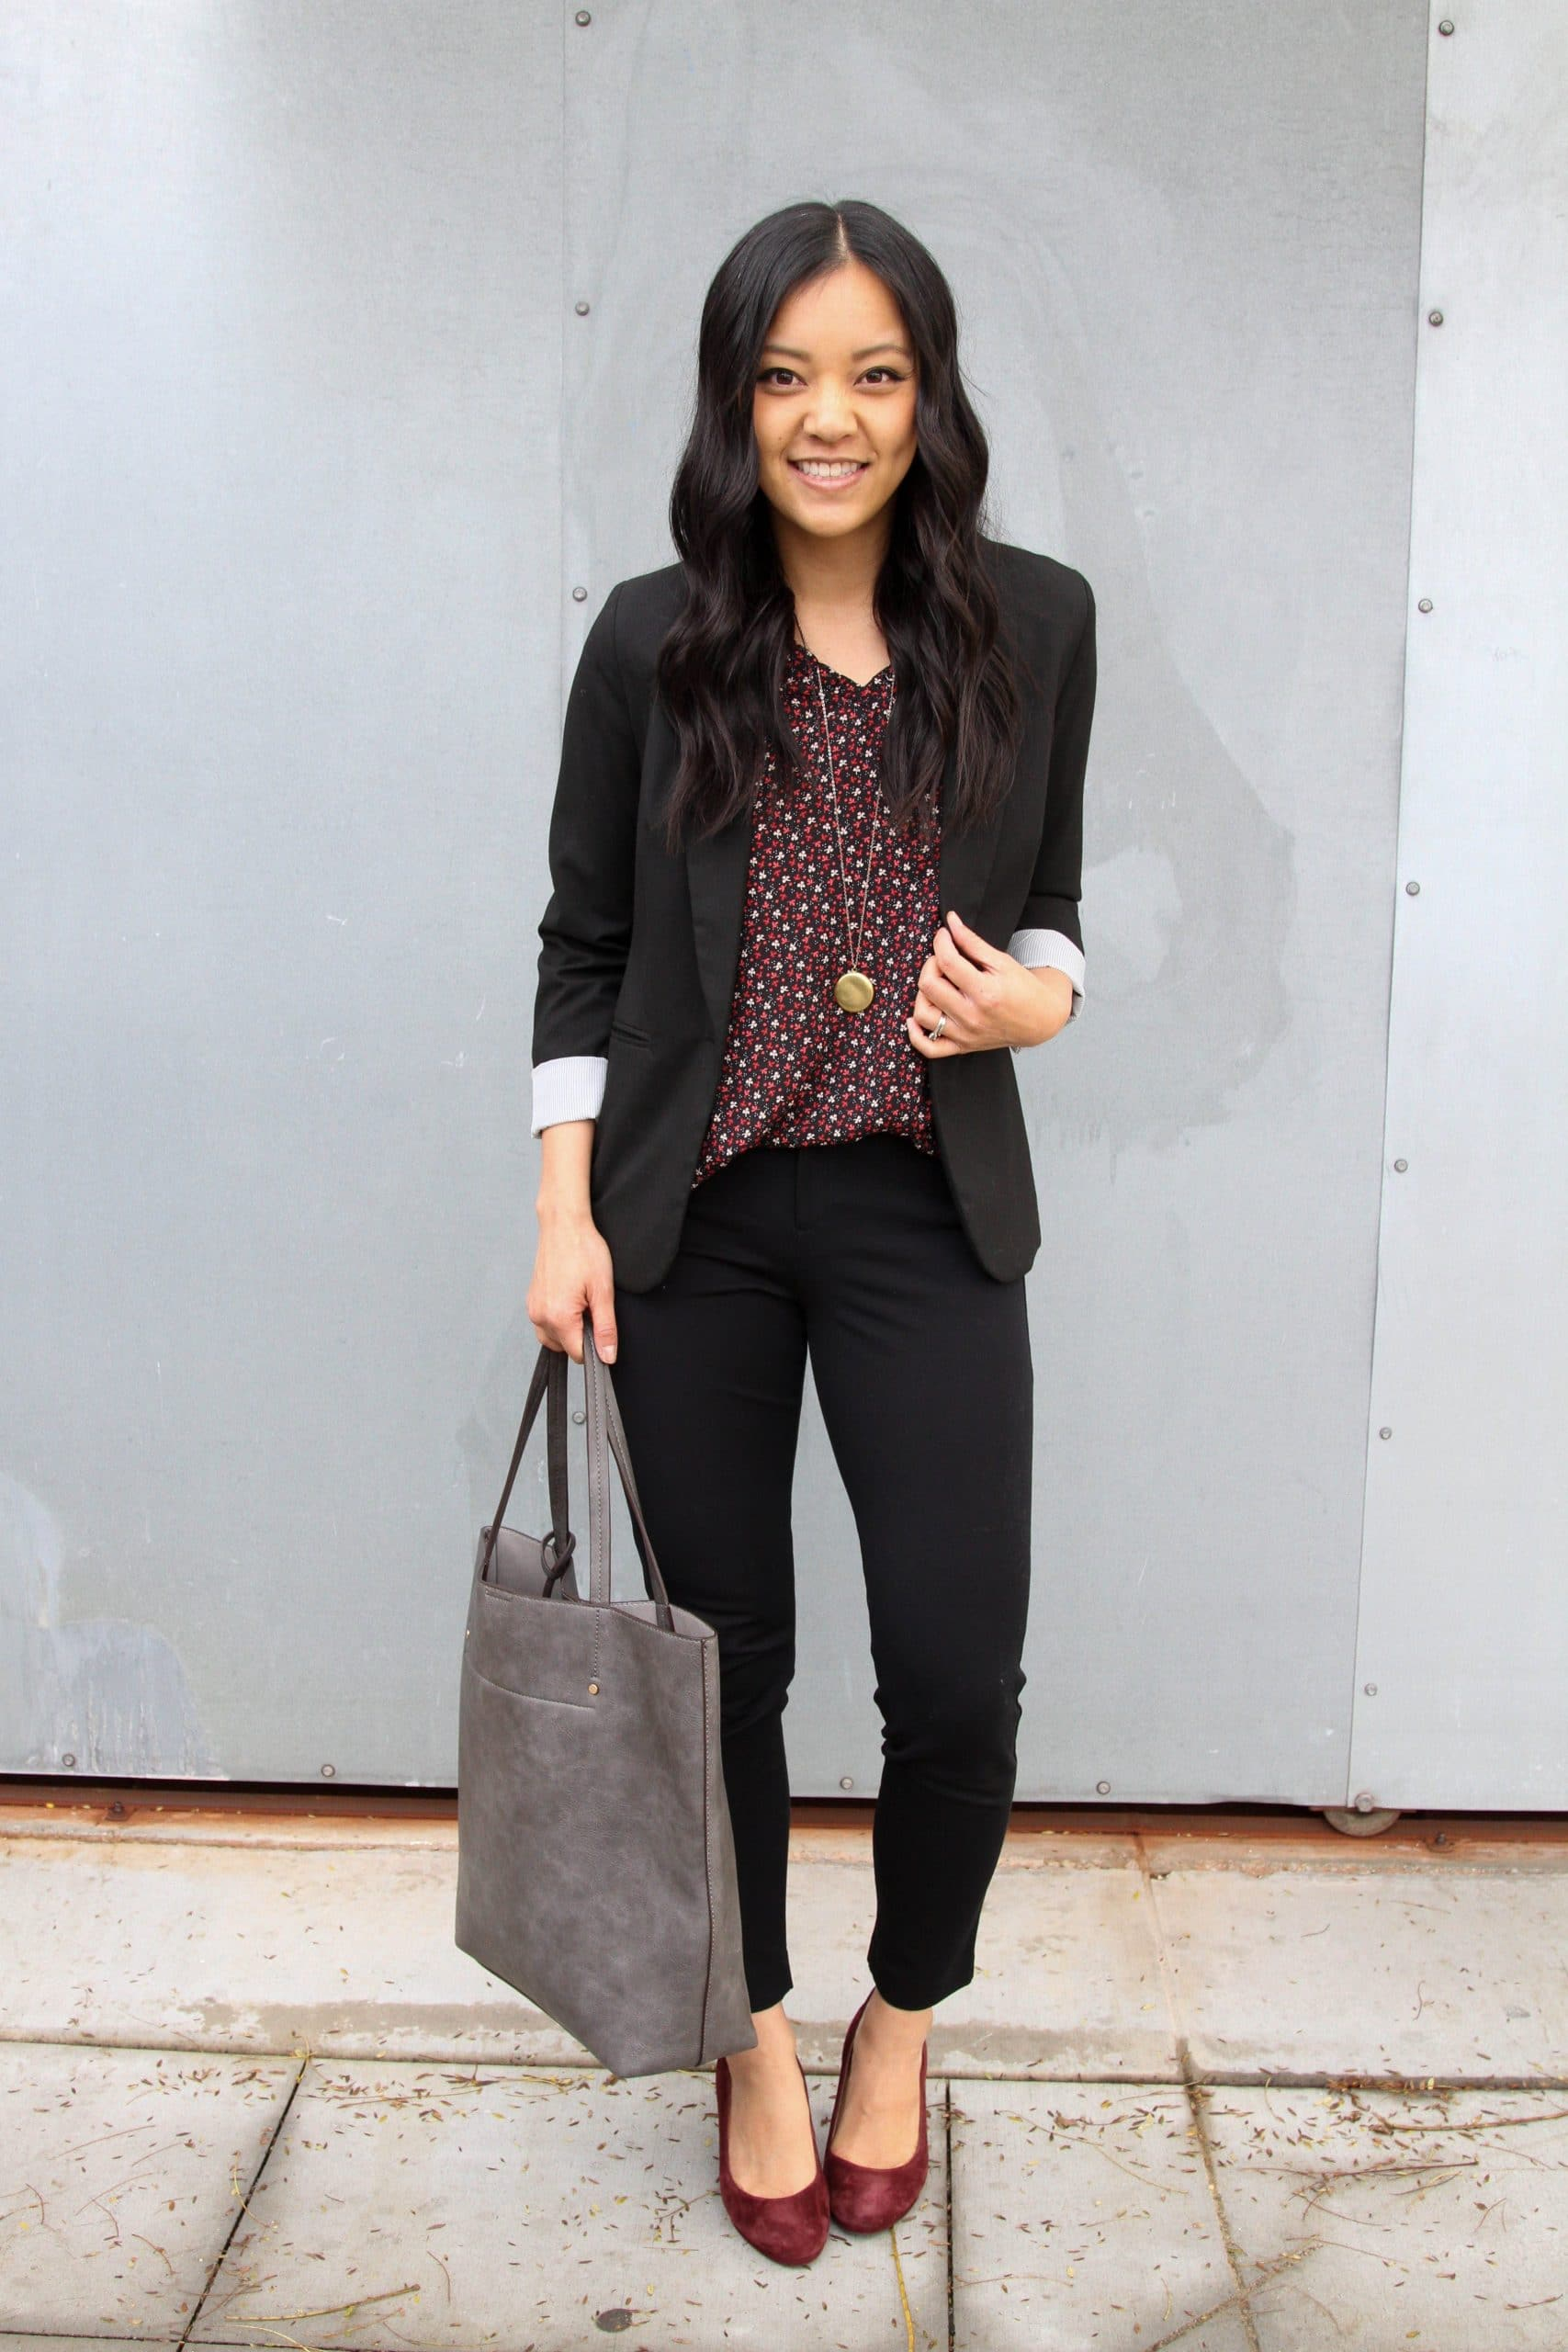 Business Casual Outfit: floral v-neck top + black blazer + black skinny pants + maroon suede pumps + gray leather tote bag + long gold disc pendant